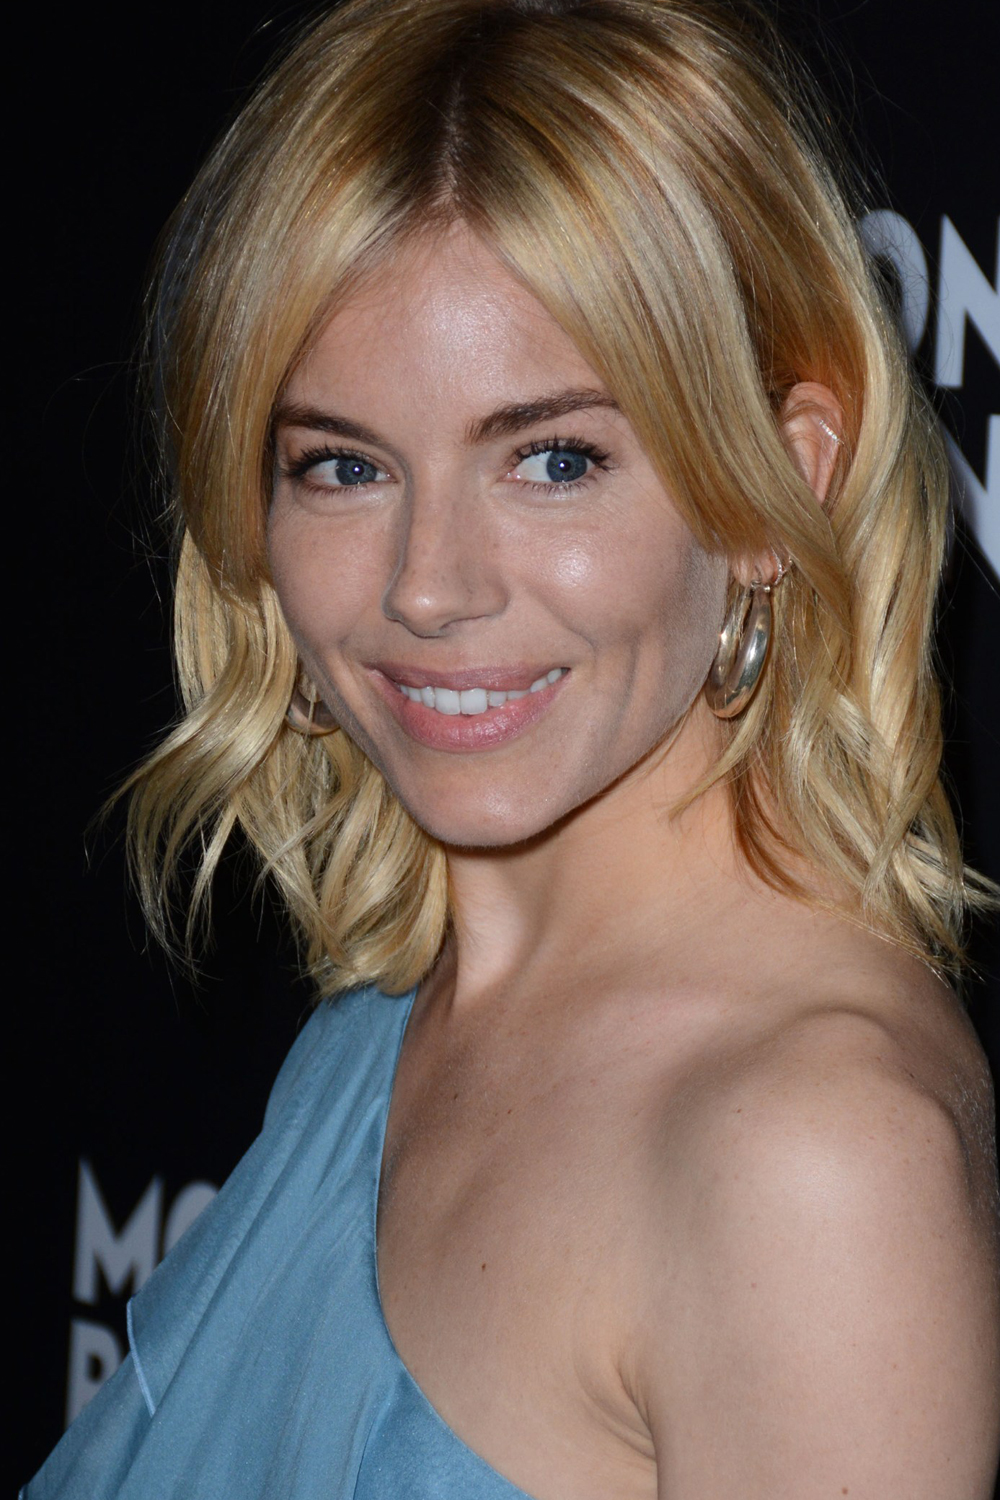 Blonde hairstyles the marie claire guide to getting it just right urmus Images